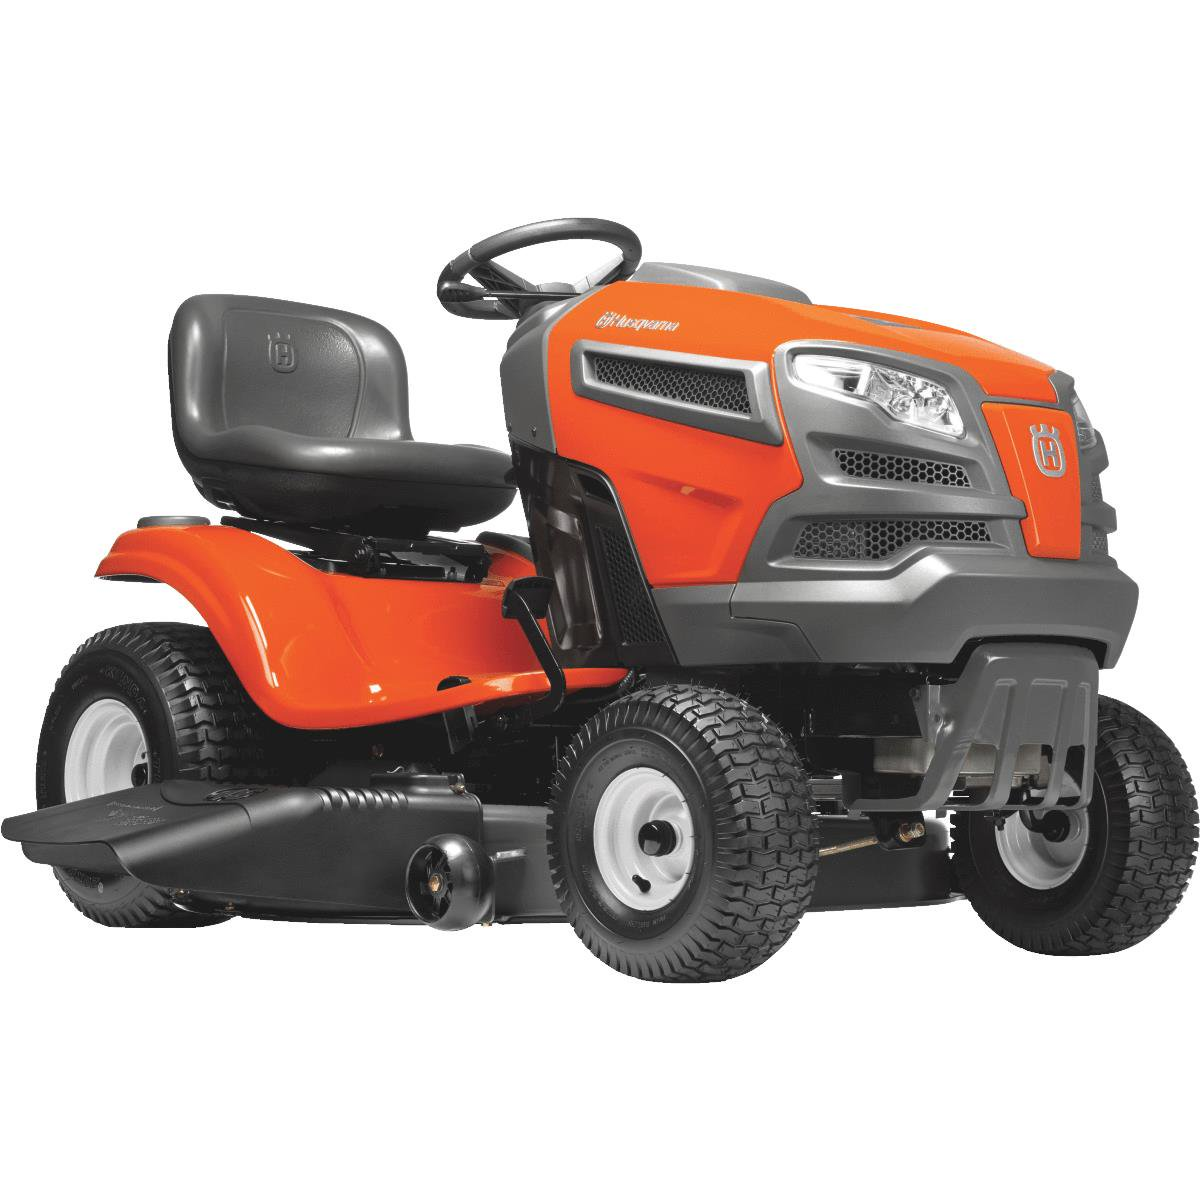 Husqvarna YTA22V46 Lawn Tractor by HUSQVARNA OUTDOOR PRODUCTS